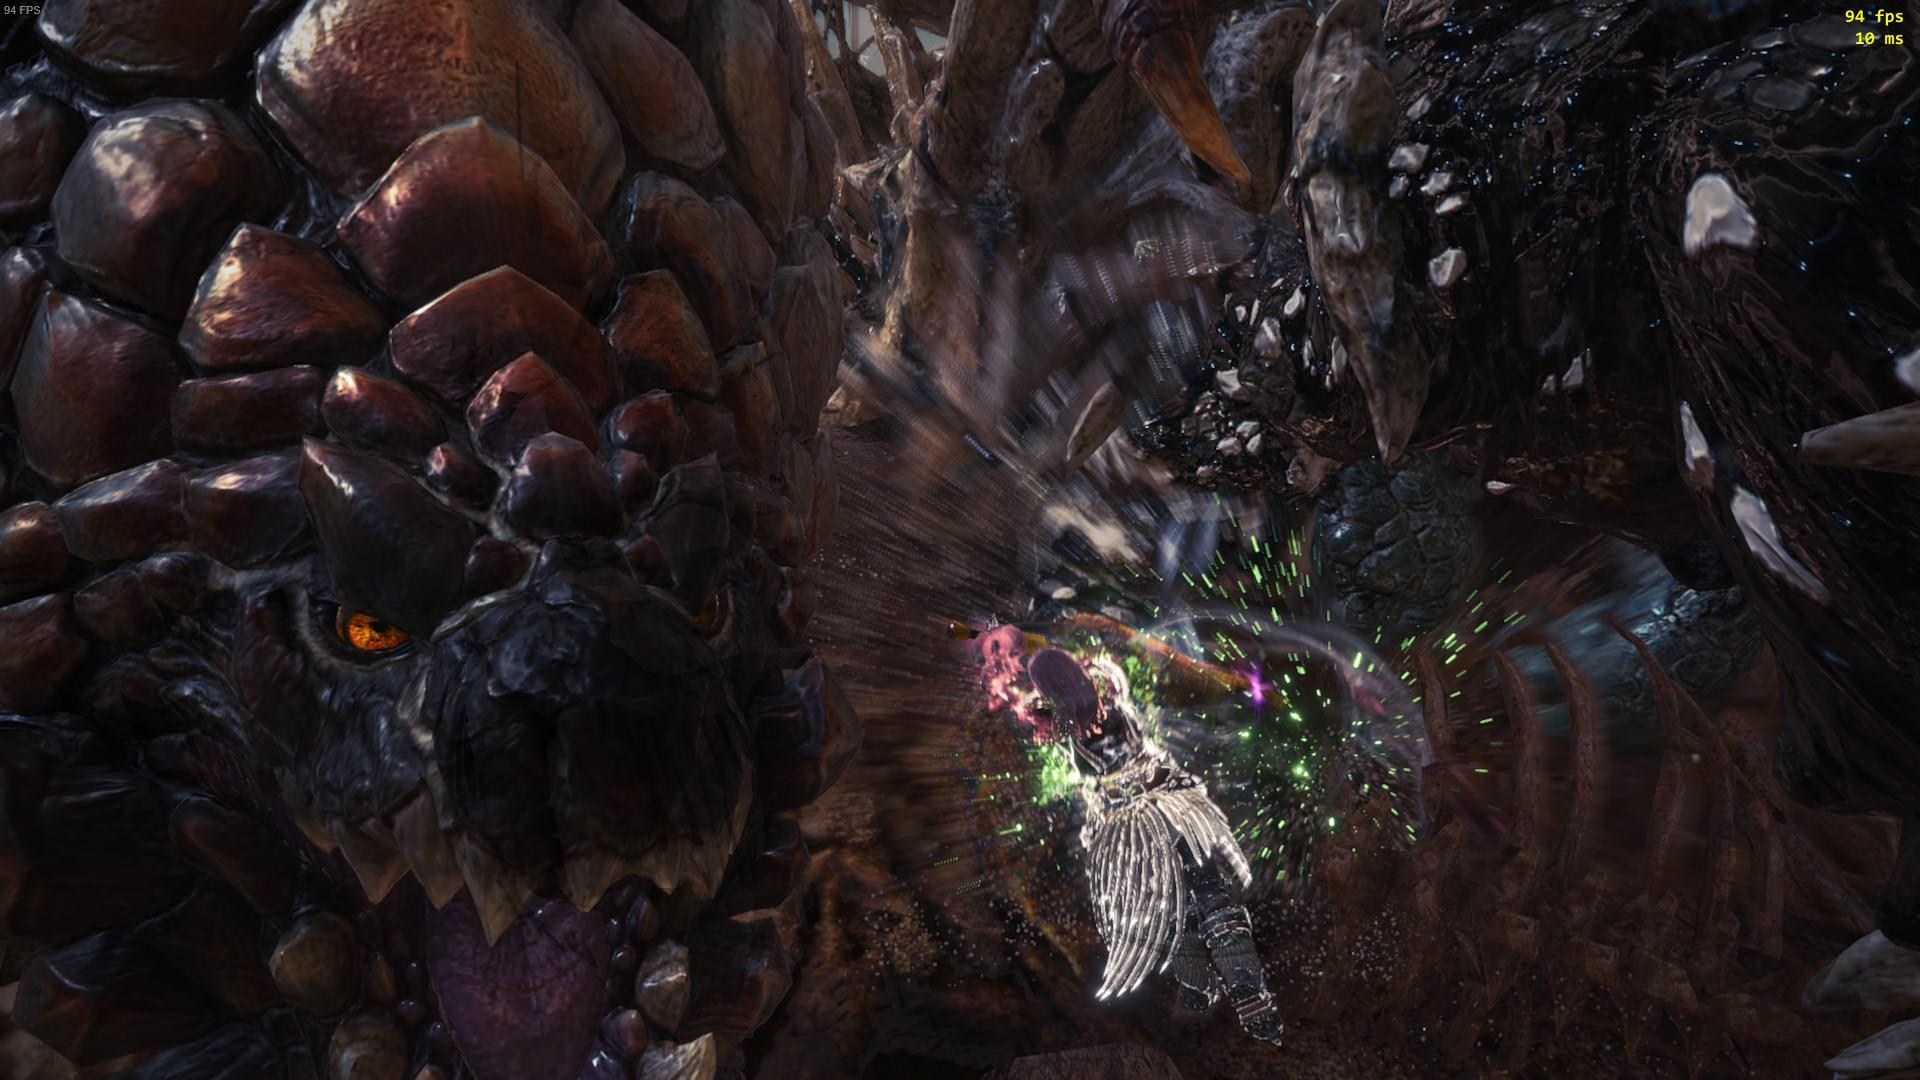 Monster Hunter World Radobaan Wallpapers Wallpaper Cave This gigantic monster consumes the bones of the carcasses and coats its body with discarded bones as a form of armor. radobaan wallpapers wallpaper cave